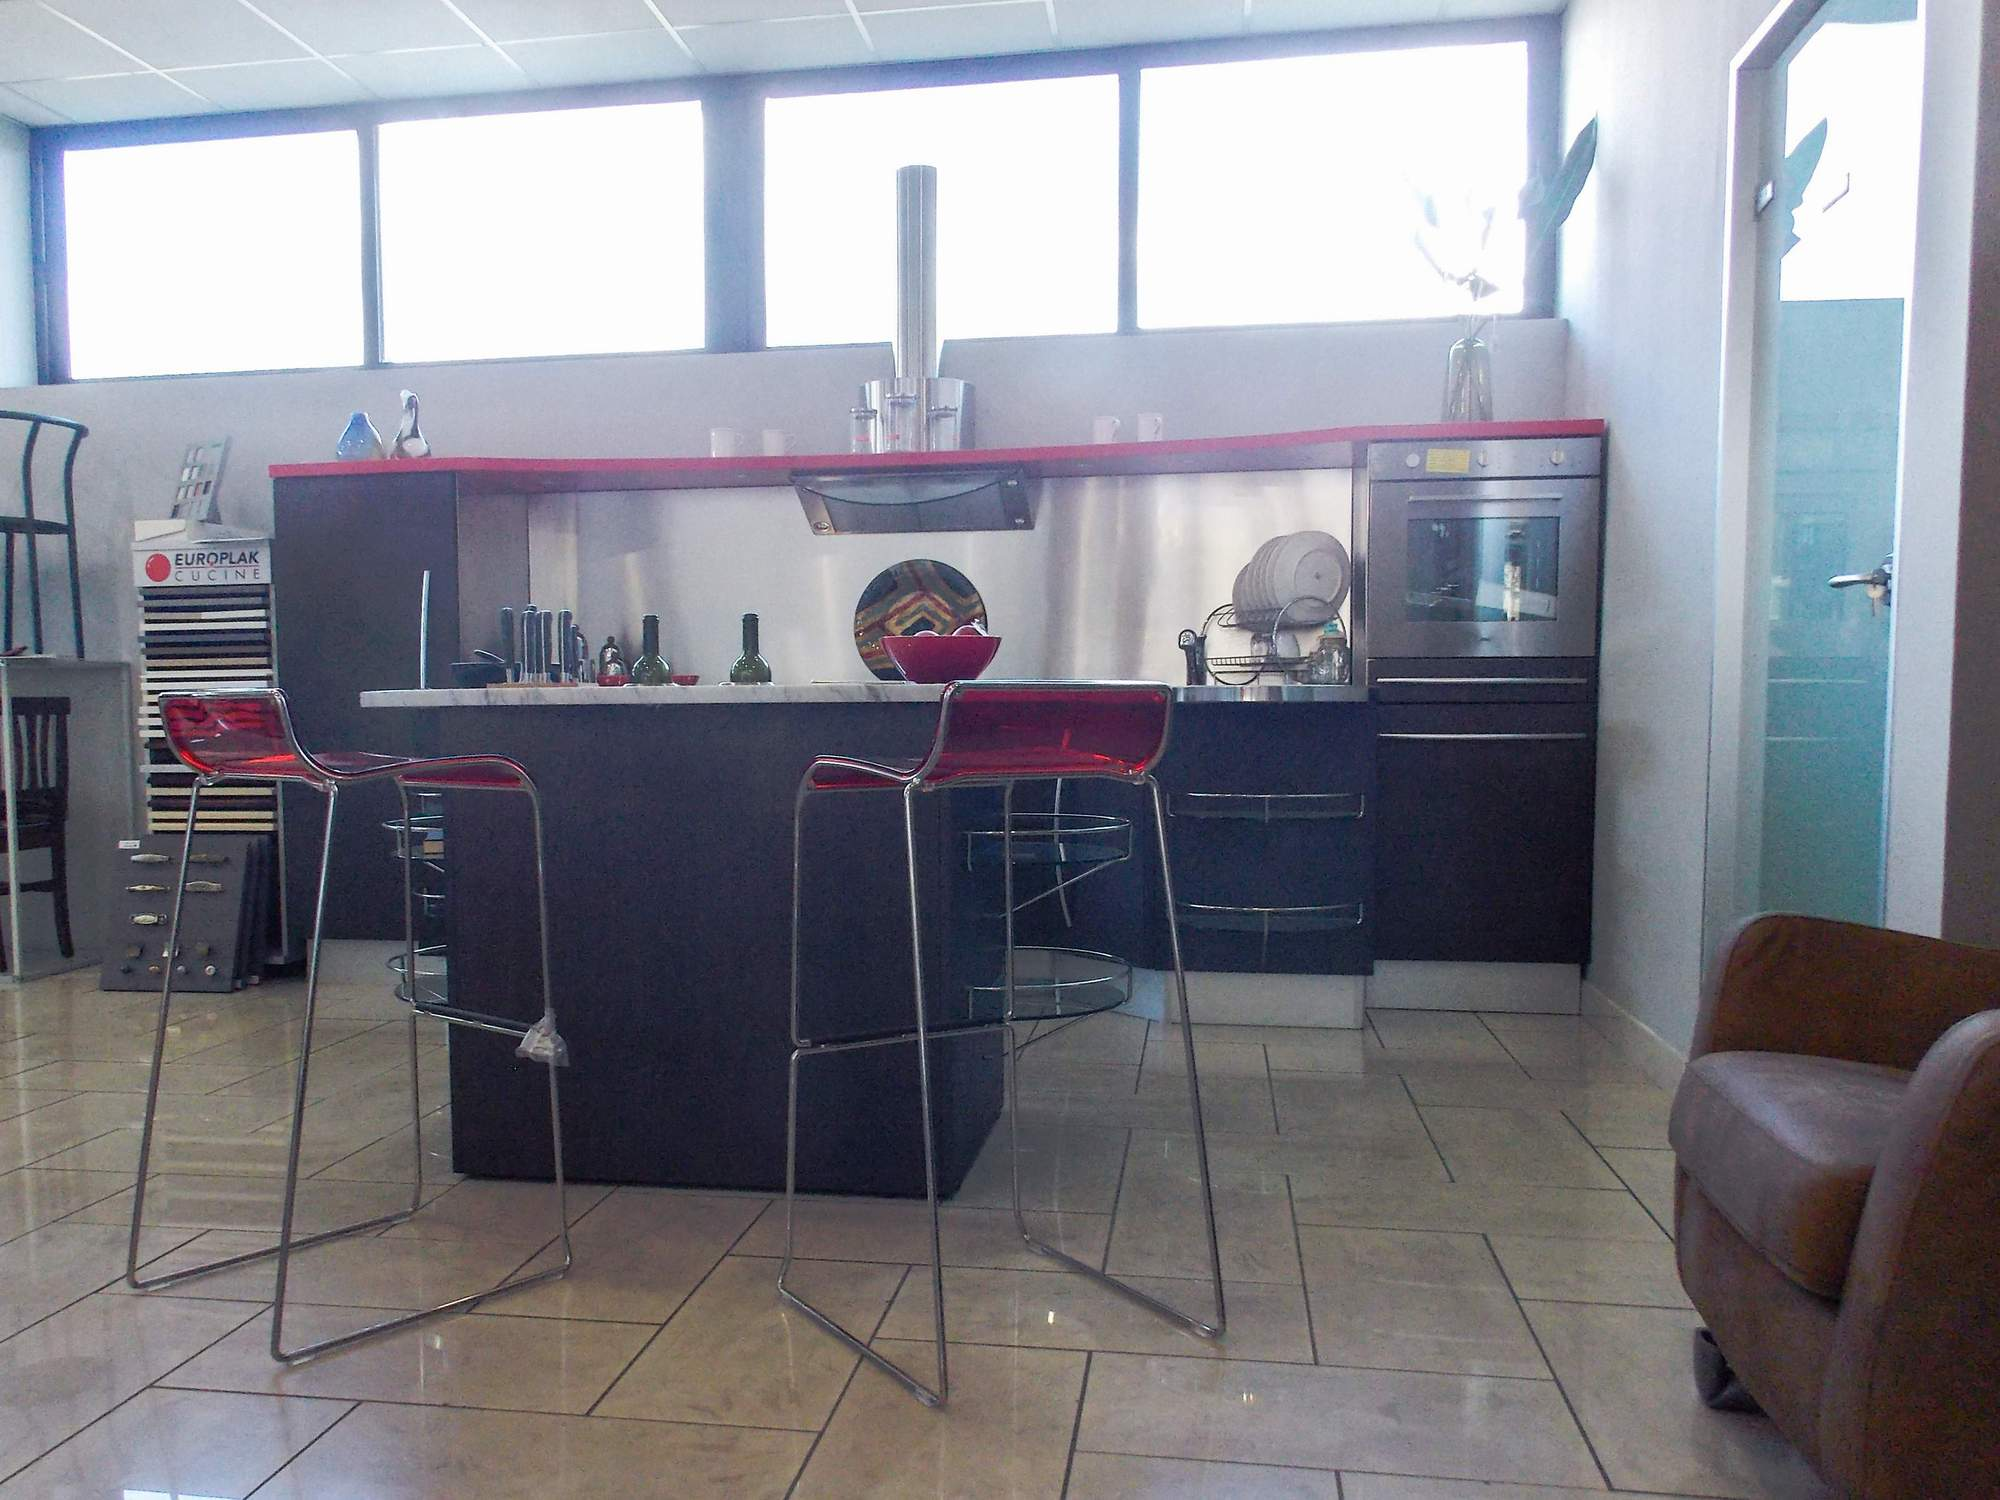 Asselle cucine passion for piedmont with asselle cucine - Asselle mobili cucine ...